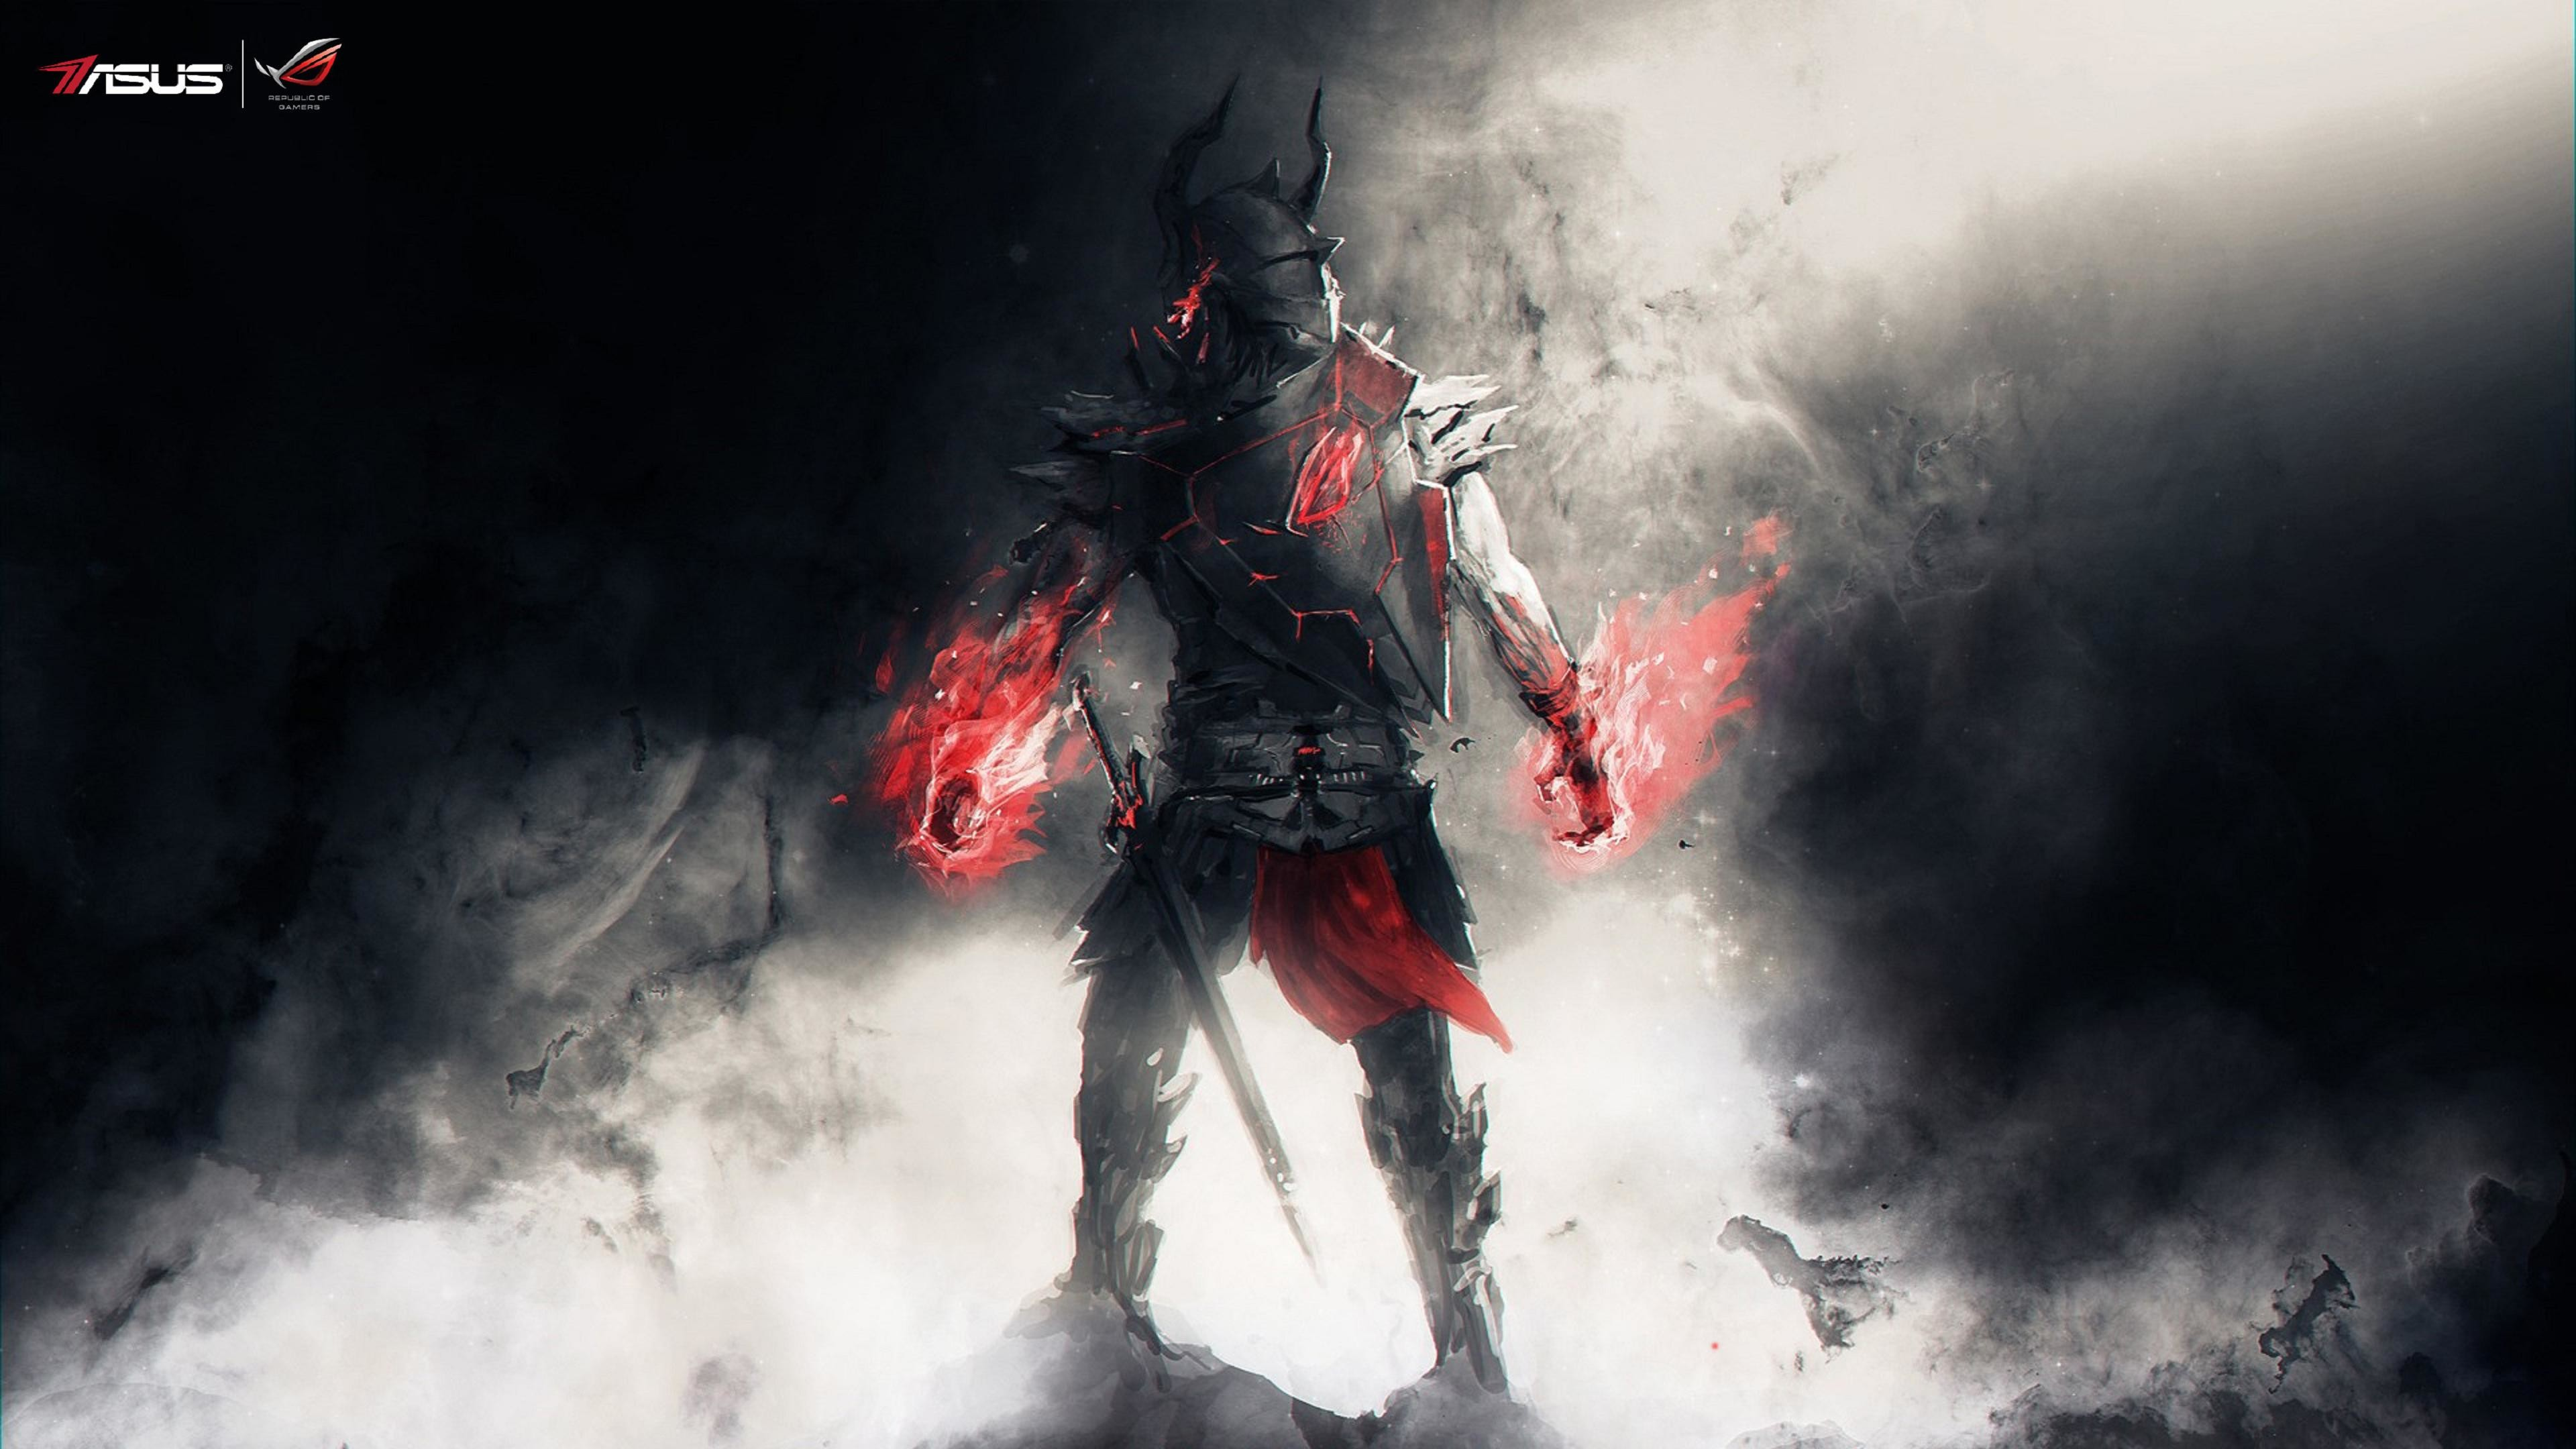 Best 20+ 4k gaming wallpaper ideas on Pinterest | The witcher 3 pc, Witcher  3 wild hunt and The witcher wild hunt